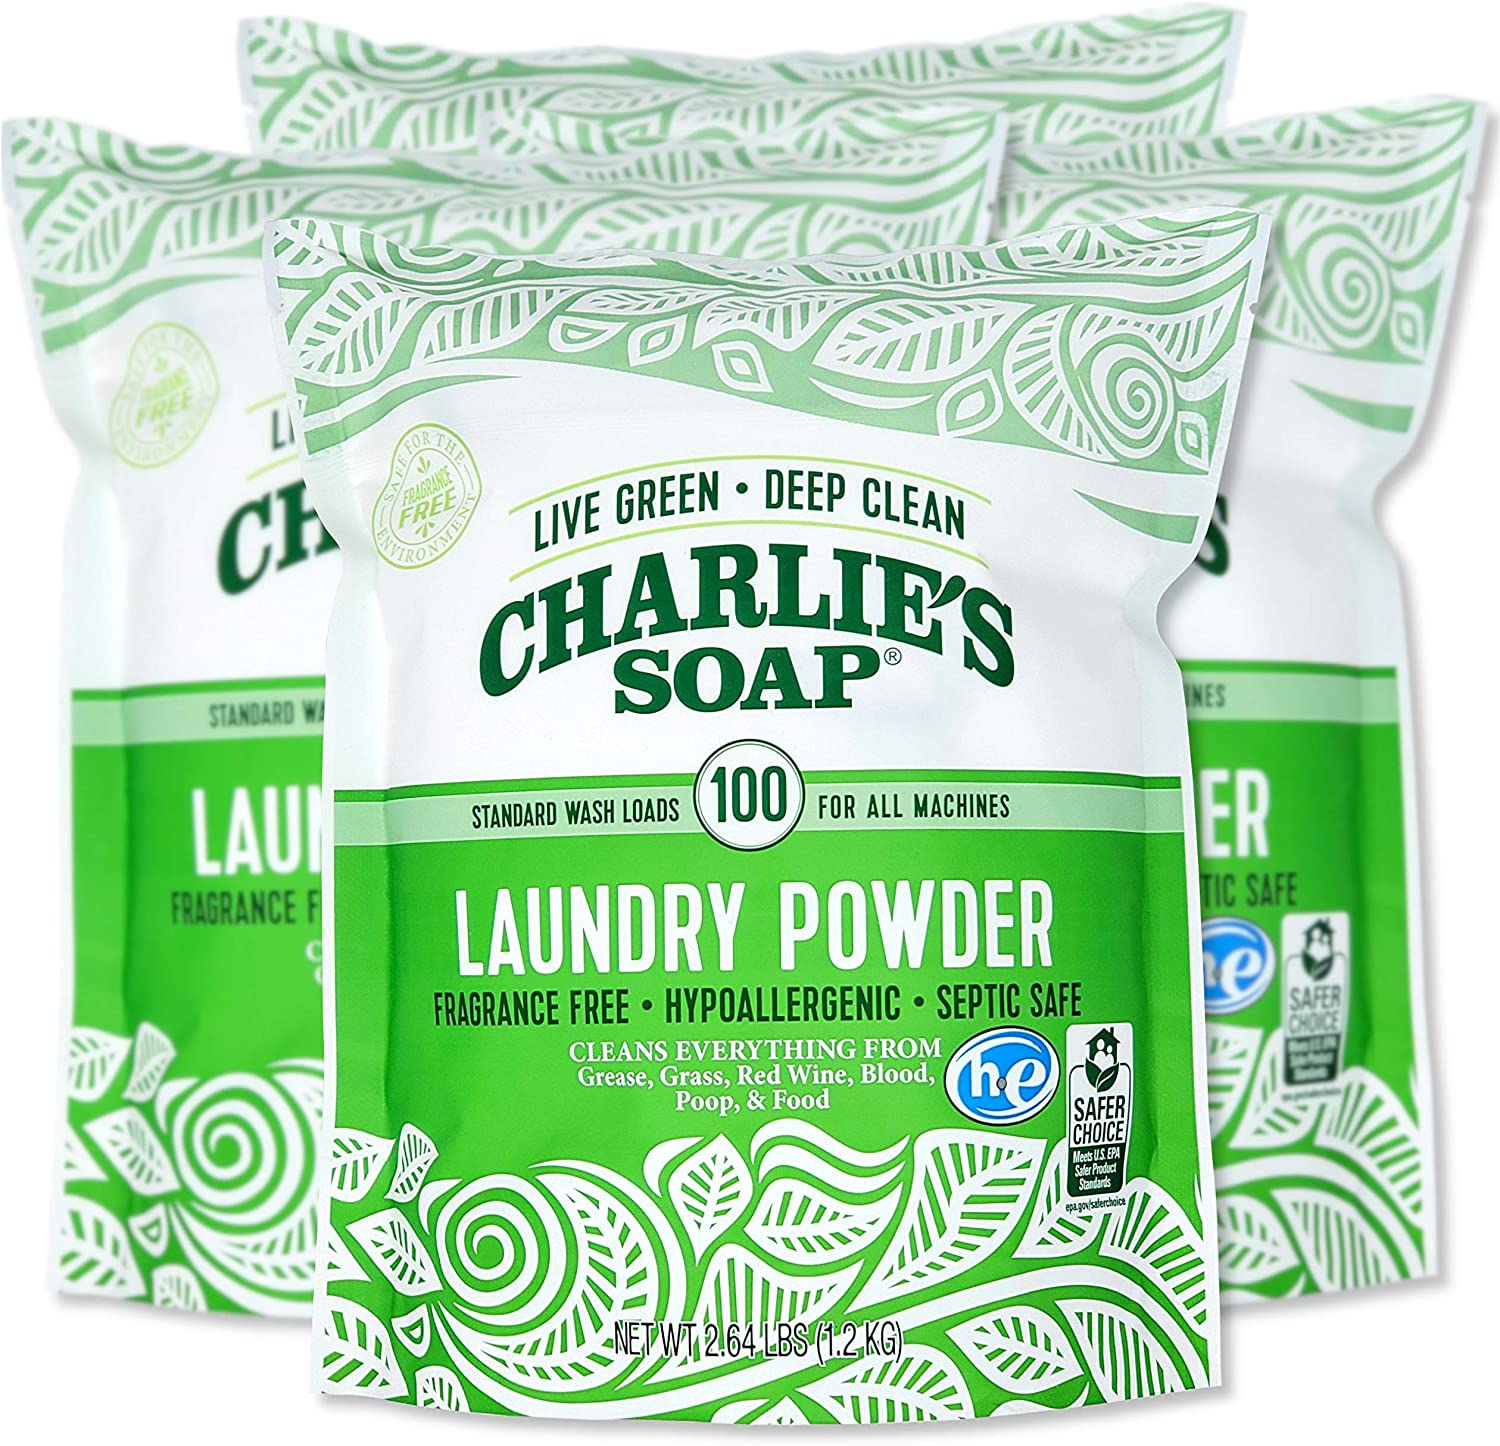 Charlie's Soap Laundry Powder (100 Loads, 4 Pack) Hypoallergenic Deep Cleaning Washing Powder Detergent – Eco-Friendly, Safe, and Effective